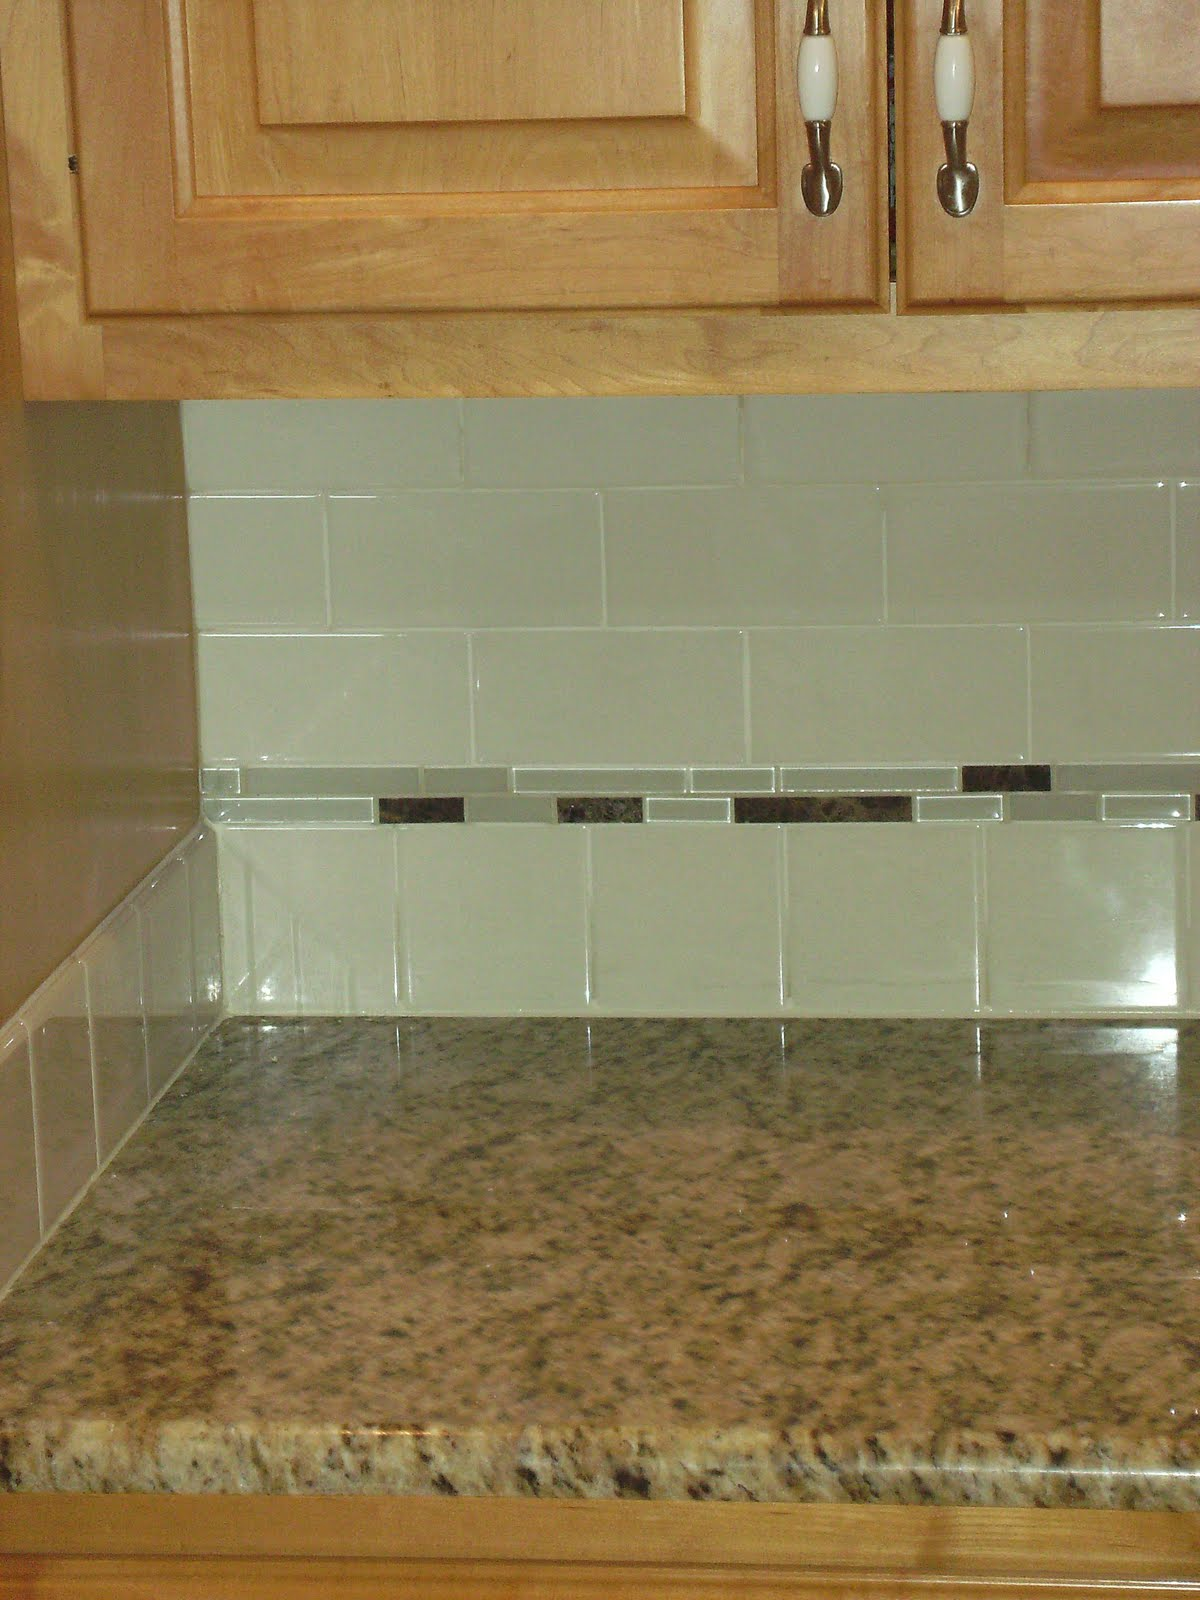 Backsplash Accent Ideas Knapp Tile And Flooring Inc Subway Tile Backsplash